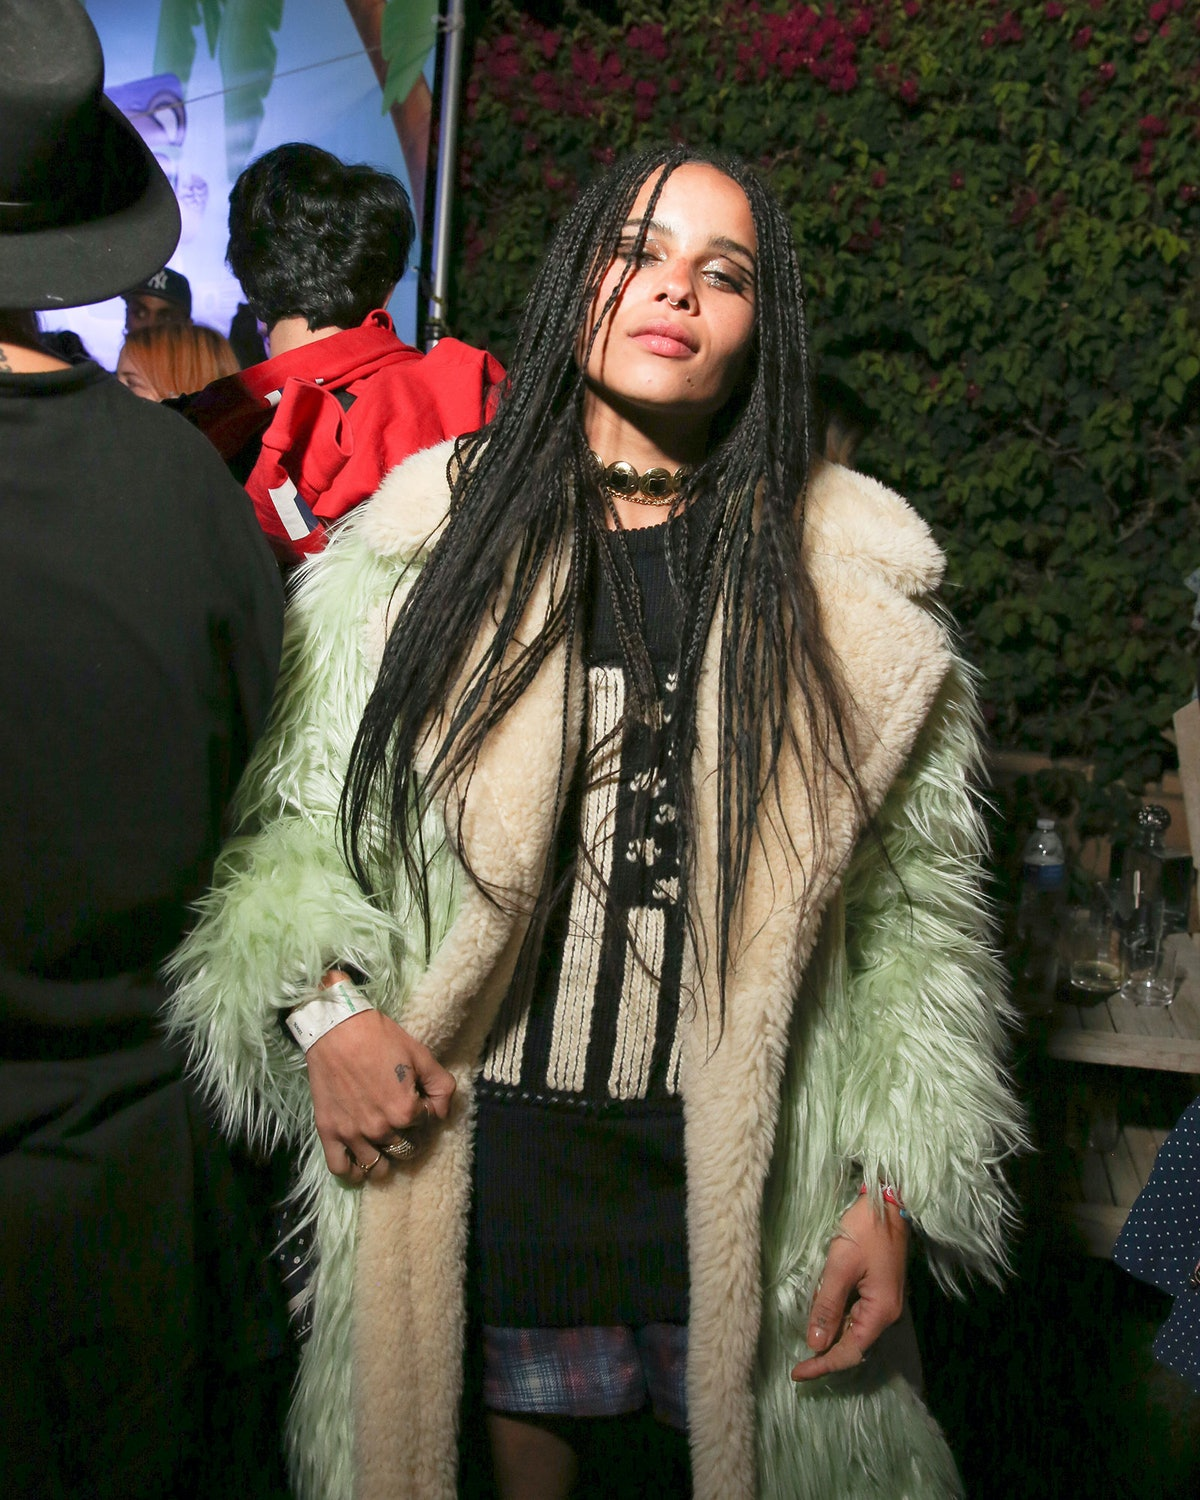 Zoe Kravitz at a party in the desert hosted by Jeremy Scott and Moschino.